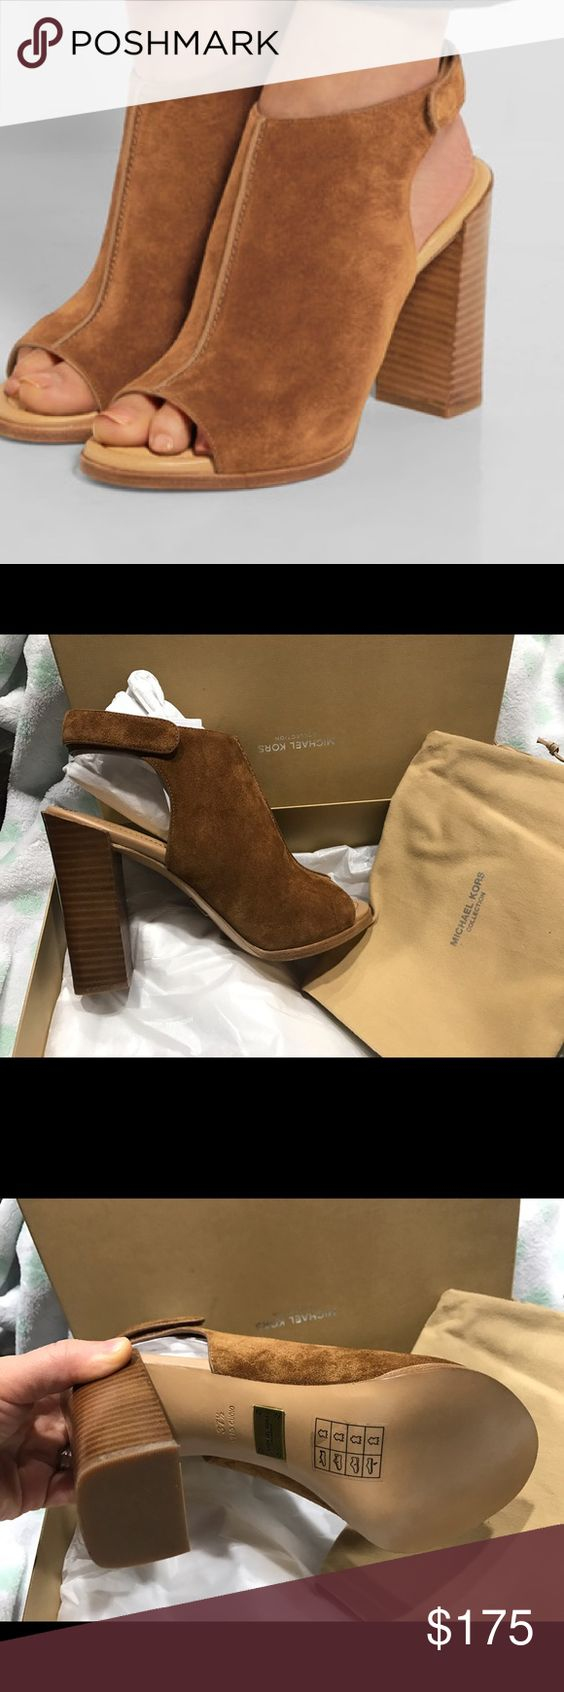 "New Michael Kors Collection Suede Open Toe Booties they're brand new with box in Luggage Color. size 7.5                                                                  A trend-right open-toe bootie crafted in velvety suede Stacked block, 4.25"" Suede upper Open toe Grip-tape ankle strap closure Leather sole Lightly padded insole Made in Italy Michael Kors Shoes Ankle Boots & Booties"